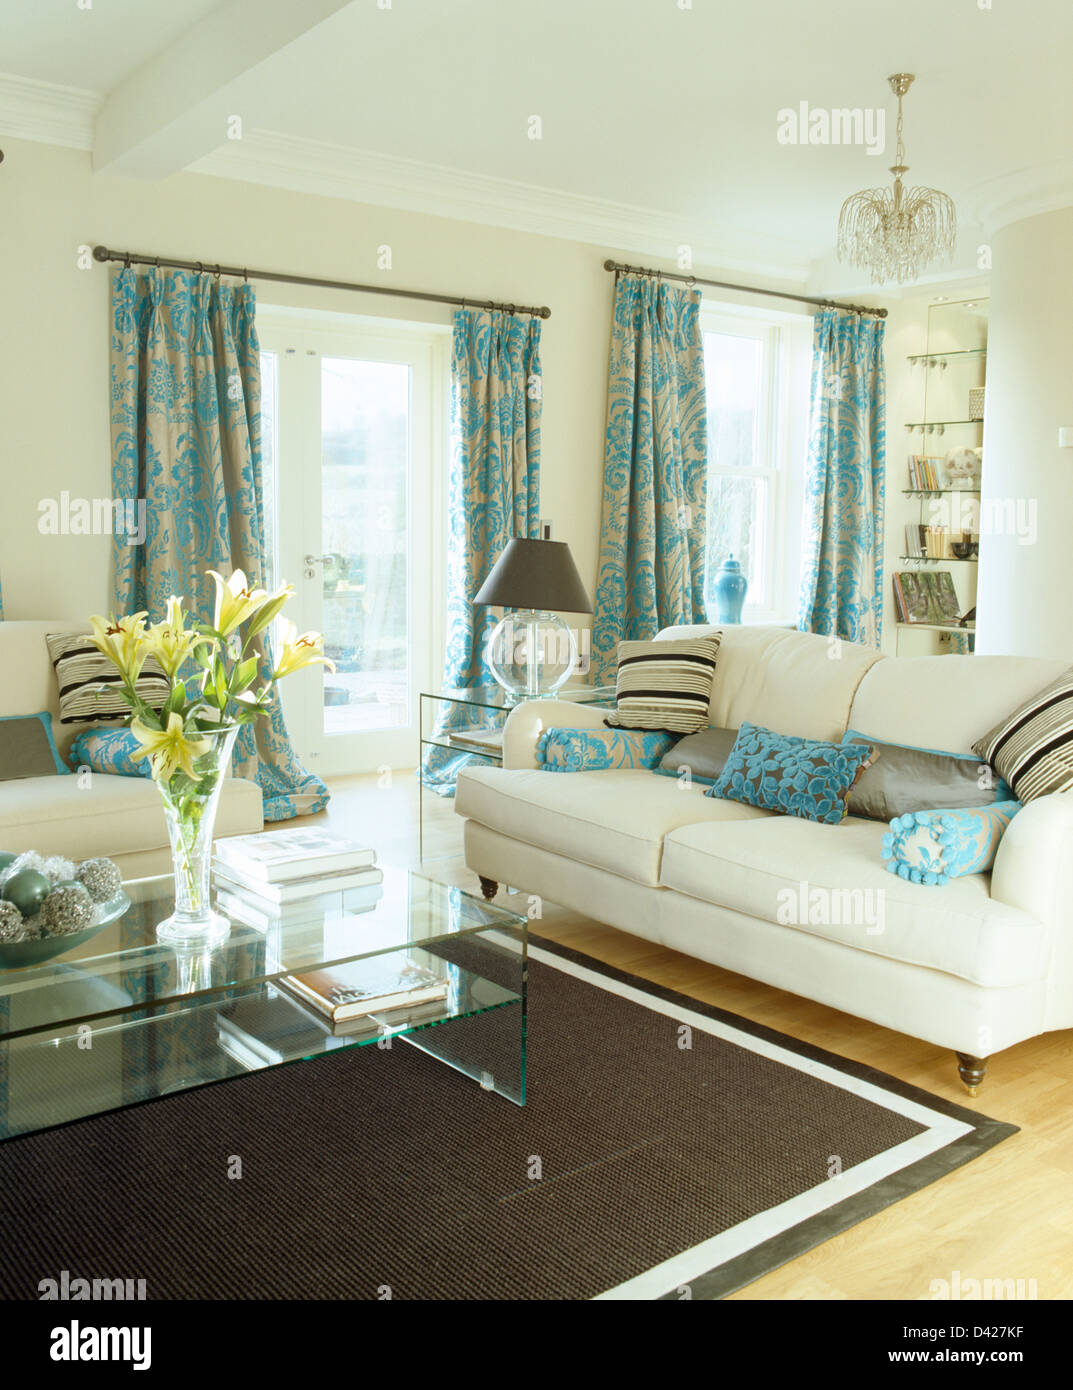 Patterned turquoise curtains and cream sofas in cream living room ...